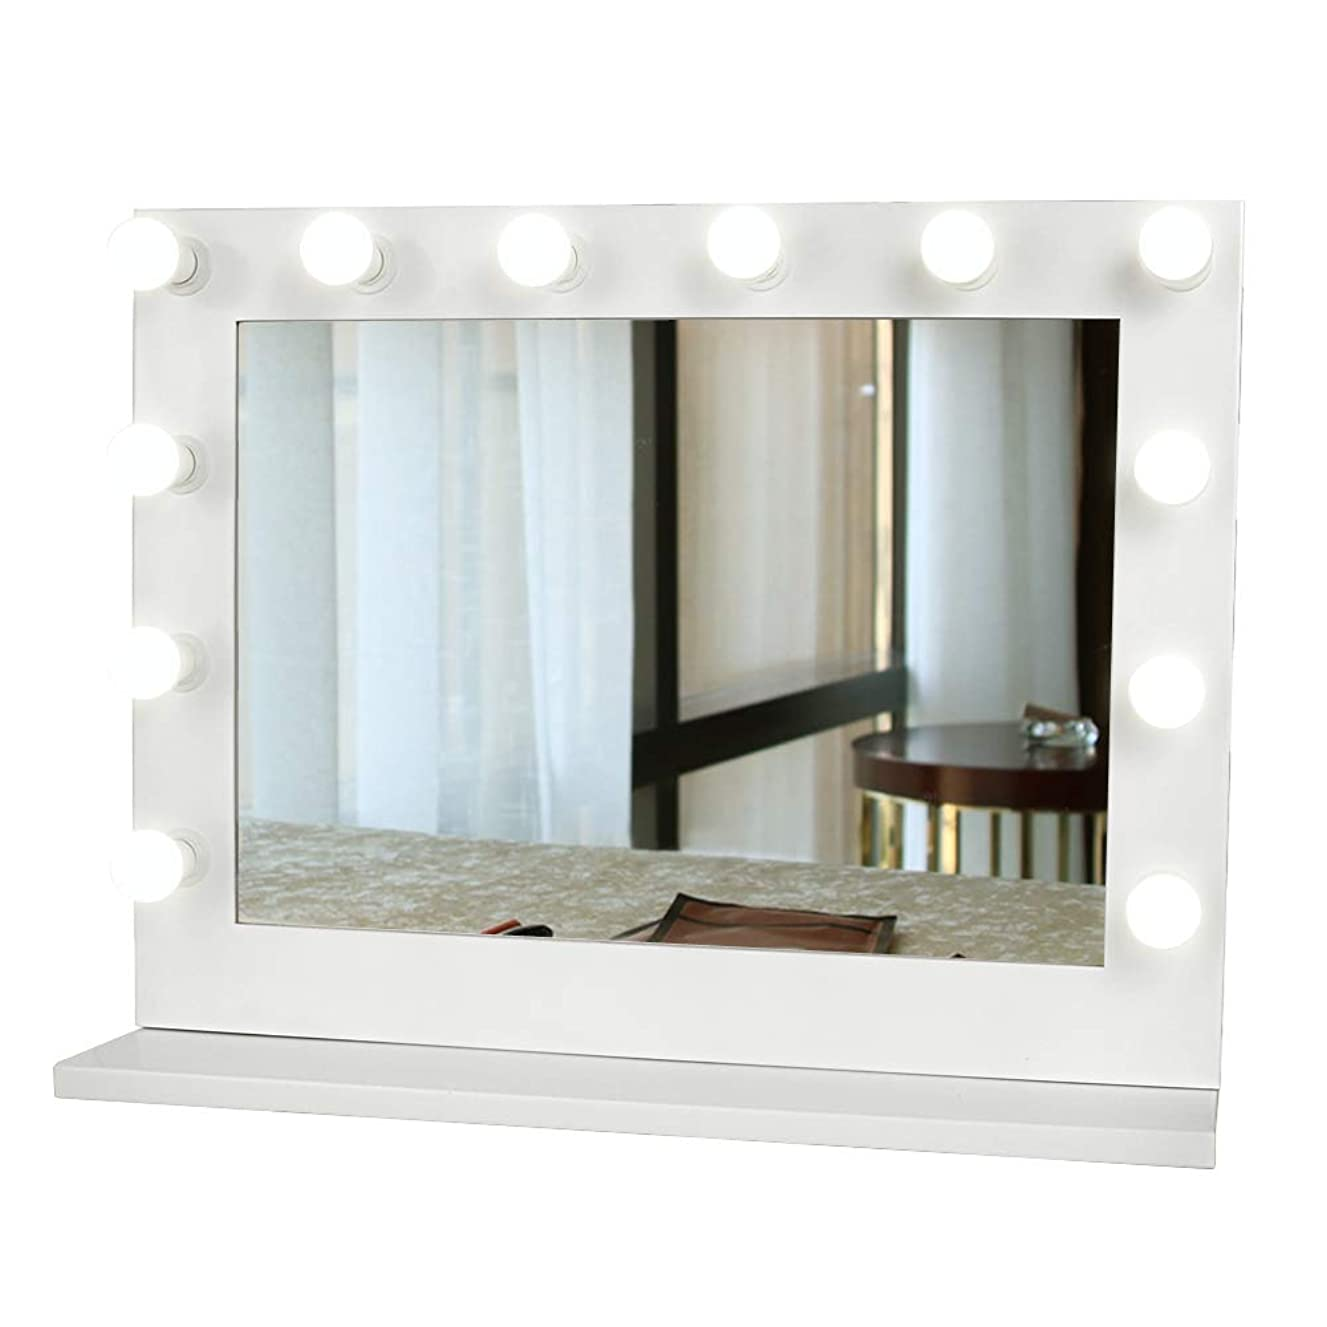 GURUN Hollywood Vanity Mirror with Light, Tabletop Makeup Mirror Lighted Vanity Glamour Mirror w/Dimmer, 12 LED Bulbs Included